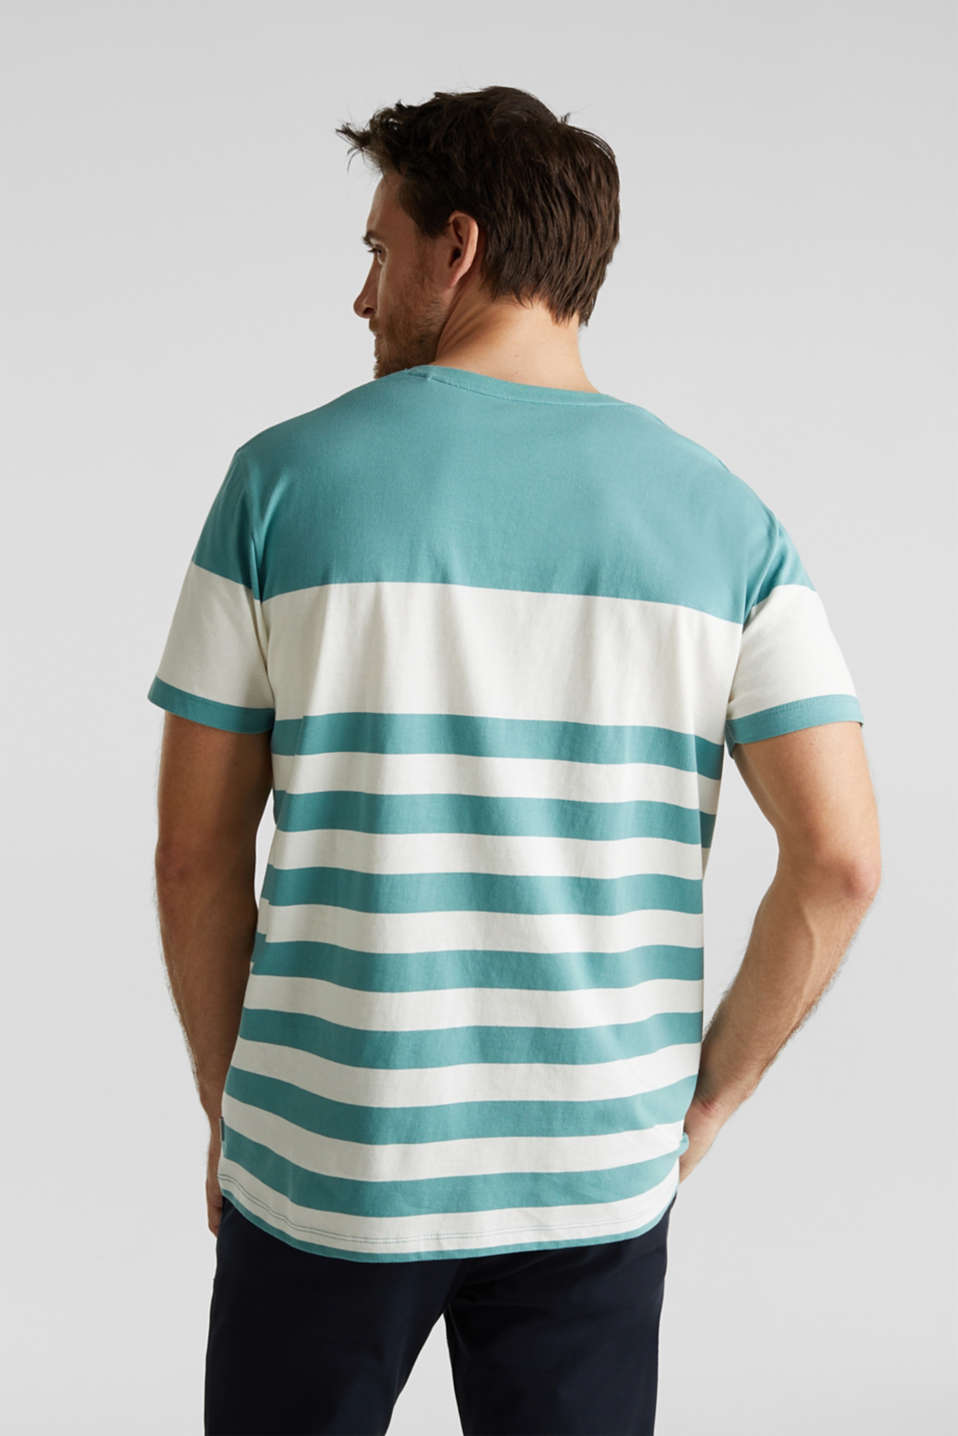 Jersey T-shirt in 100% cotton, TEAL GREEN 3, detail image number 3